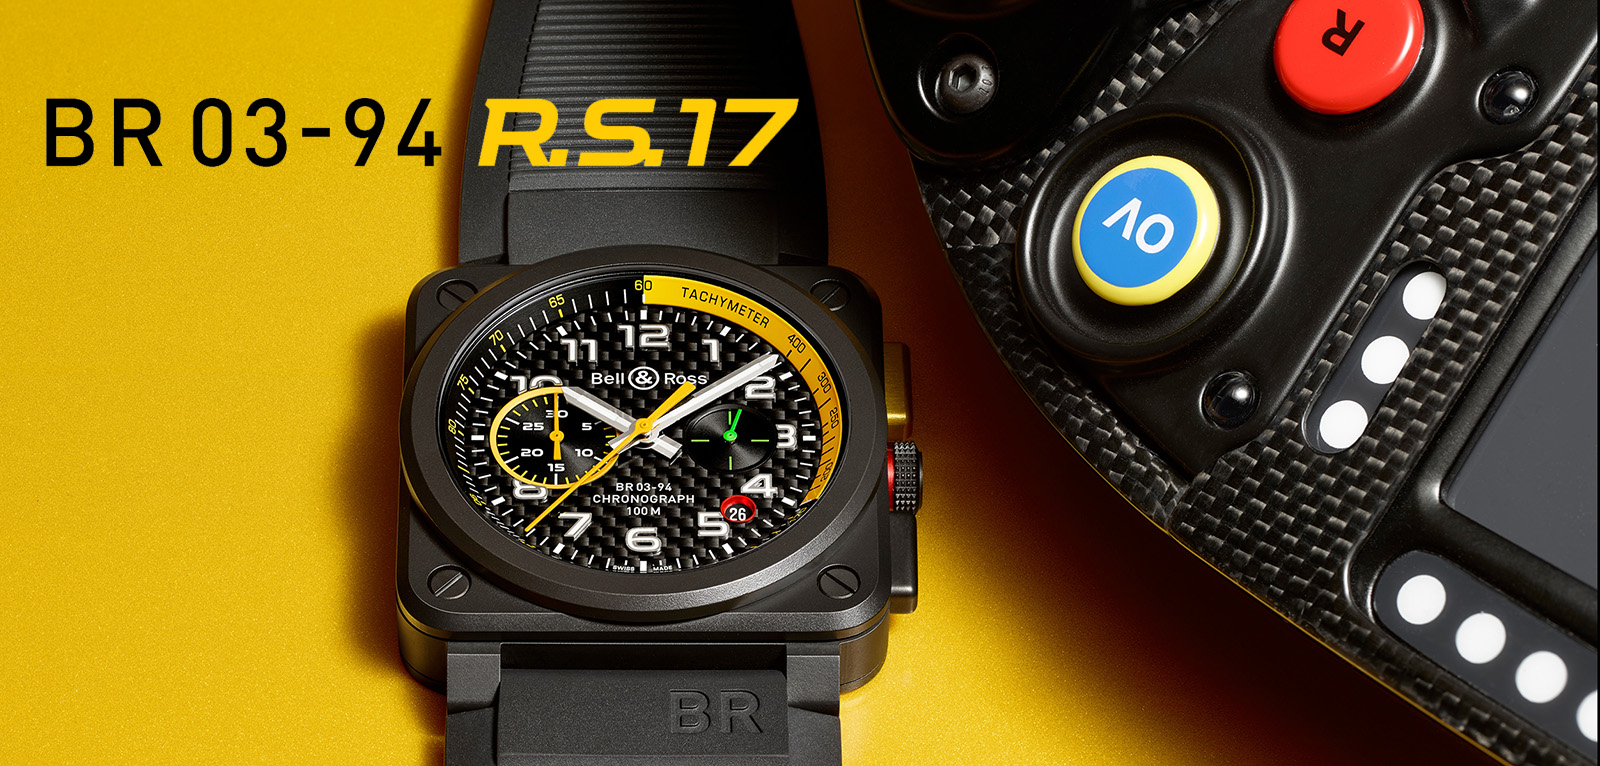 Bell & Ross BR 03-94 RS17 Chronograph - portada